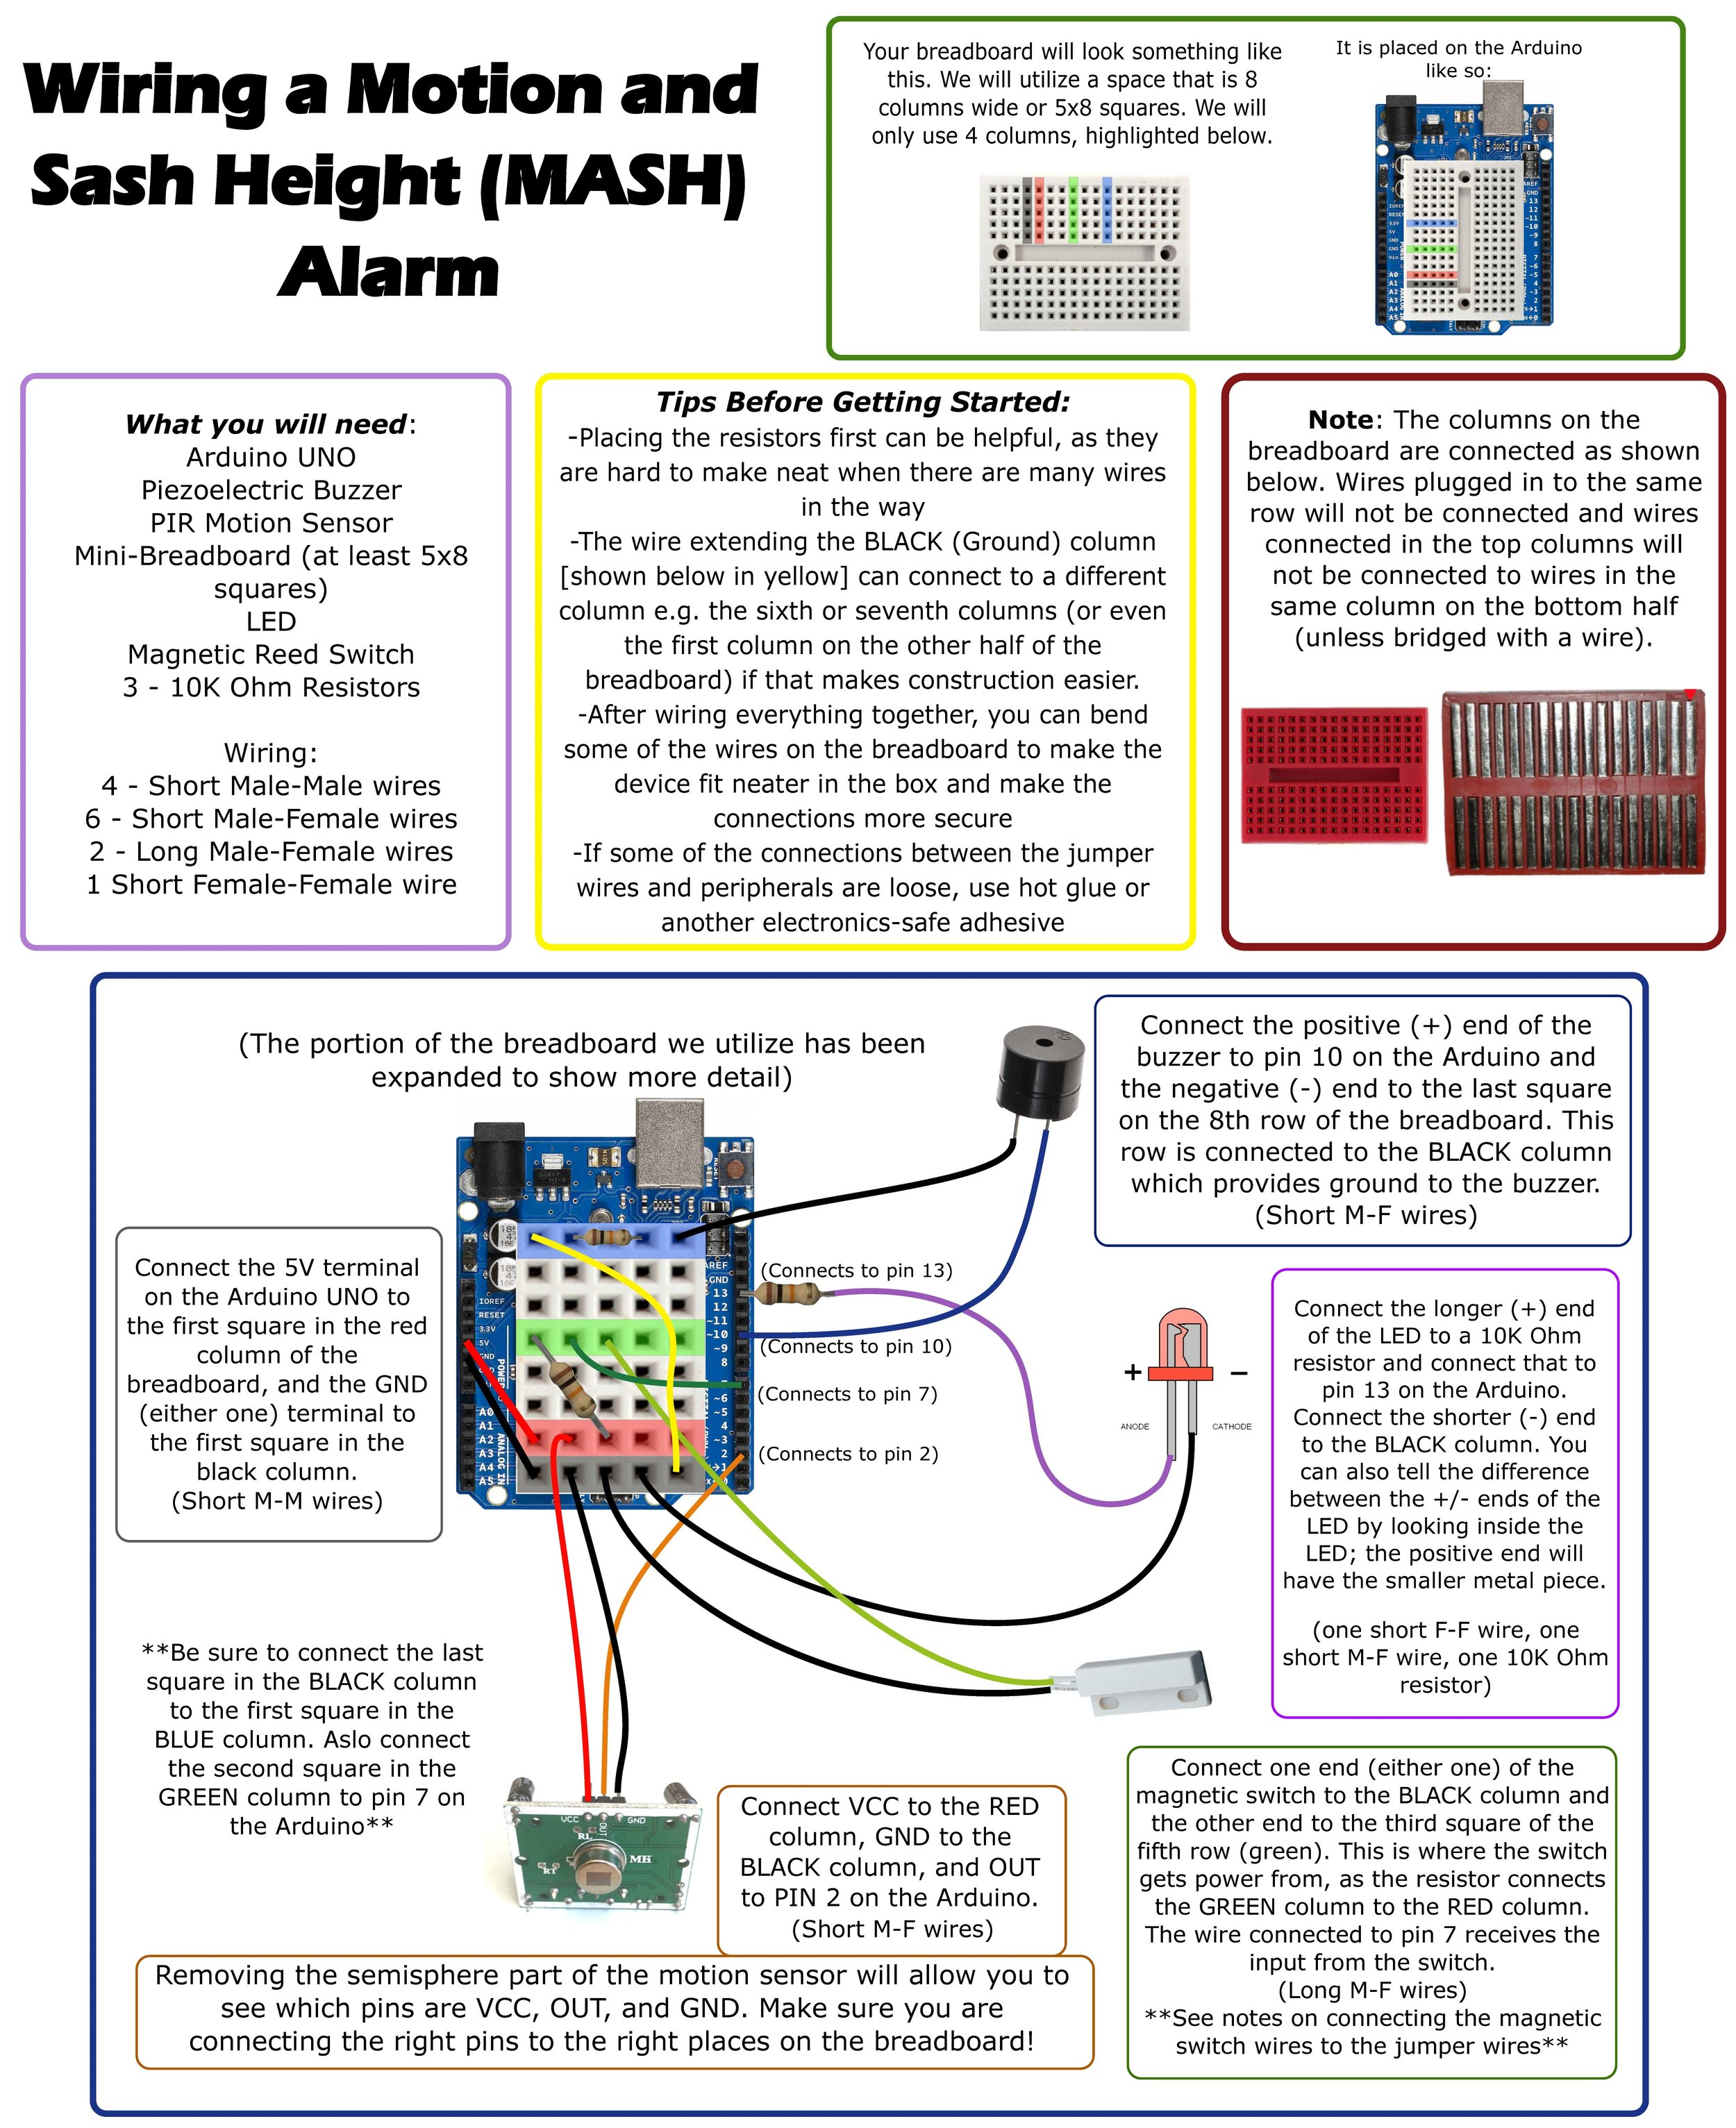 CLick to download the mash wiring schematic -